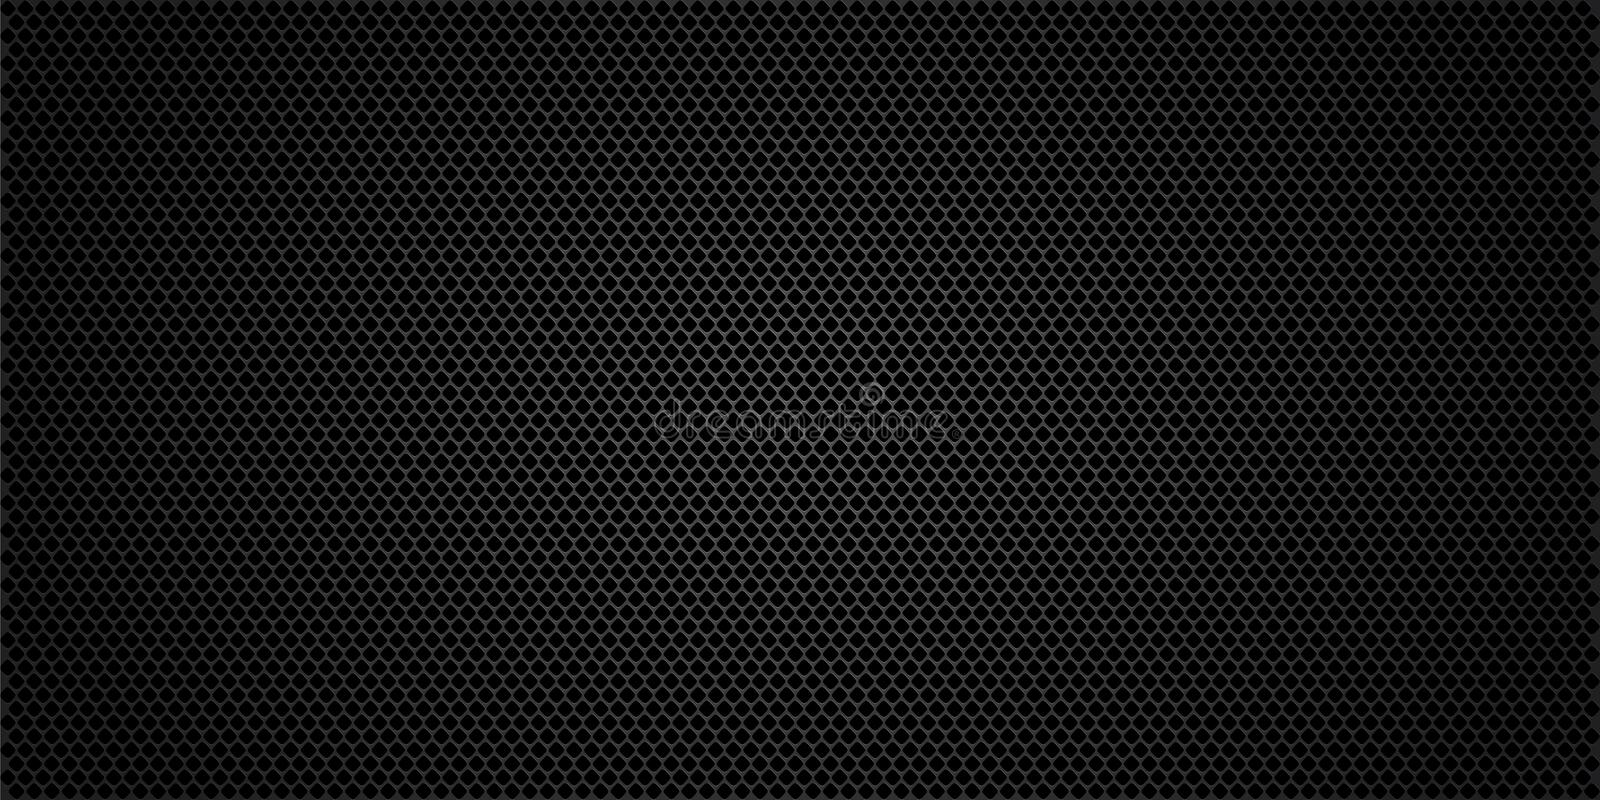 Black metallic abstract background, perforated steel mesh. Dark mockup for cool banners, vector vector illustration